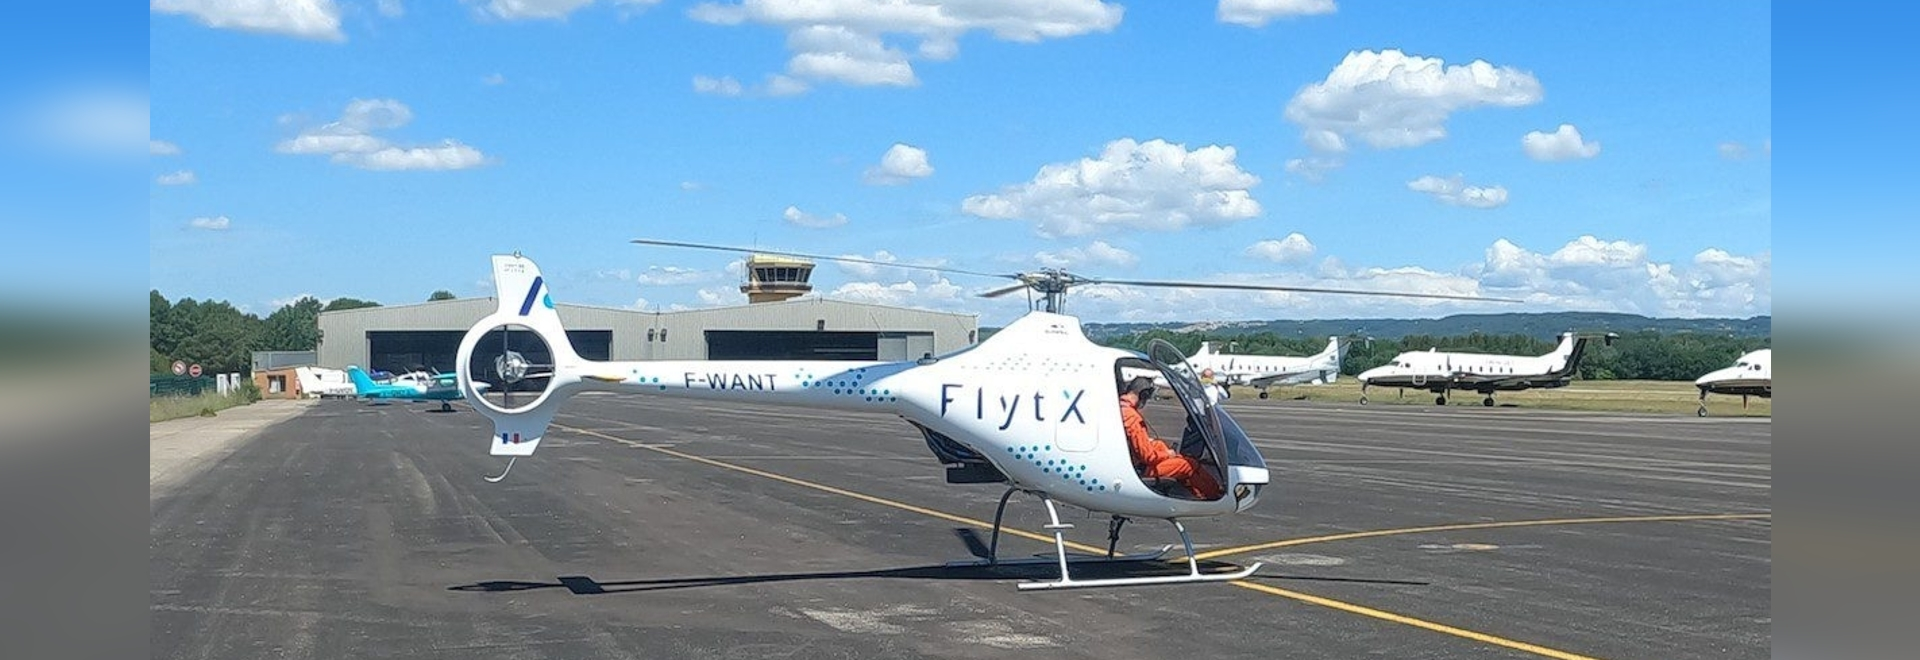 Thales is using this modified Cabri helicopter to test a prototype version of its next generation cloud-native FlytX avionics suite